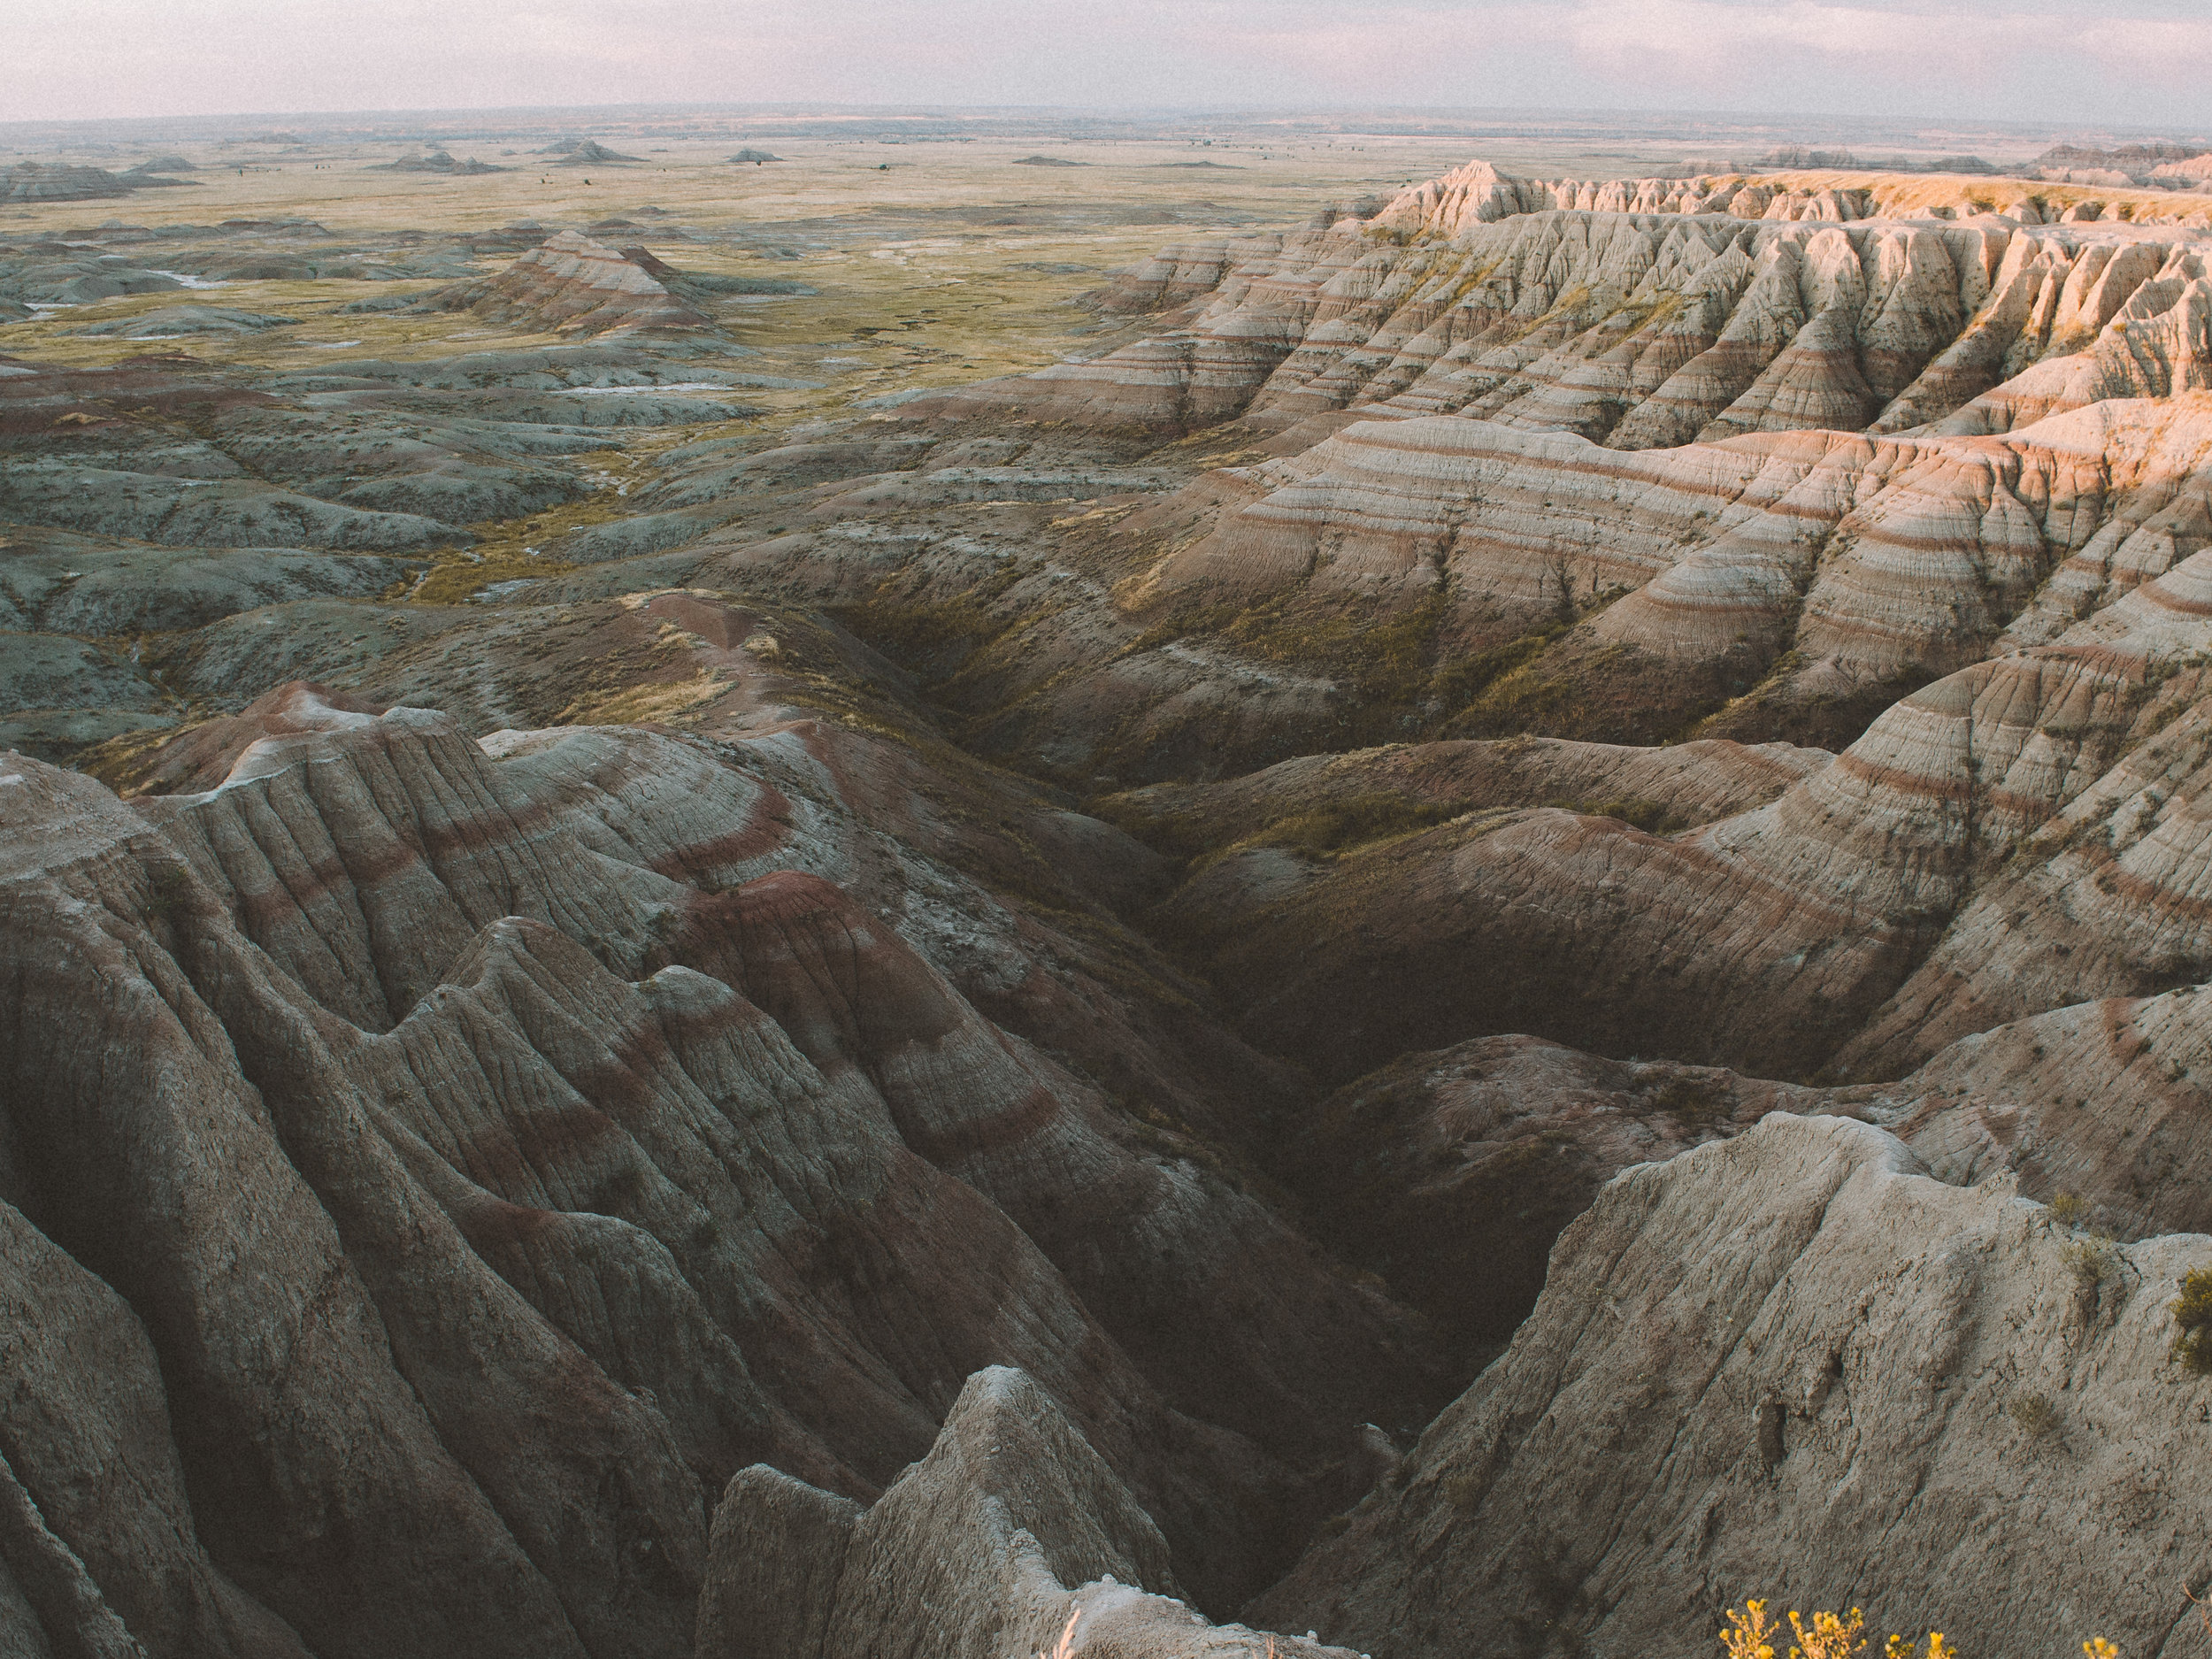 Panorama Point, Badlands National Park, South Dakota